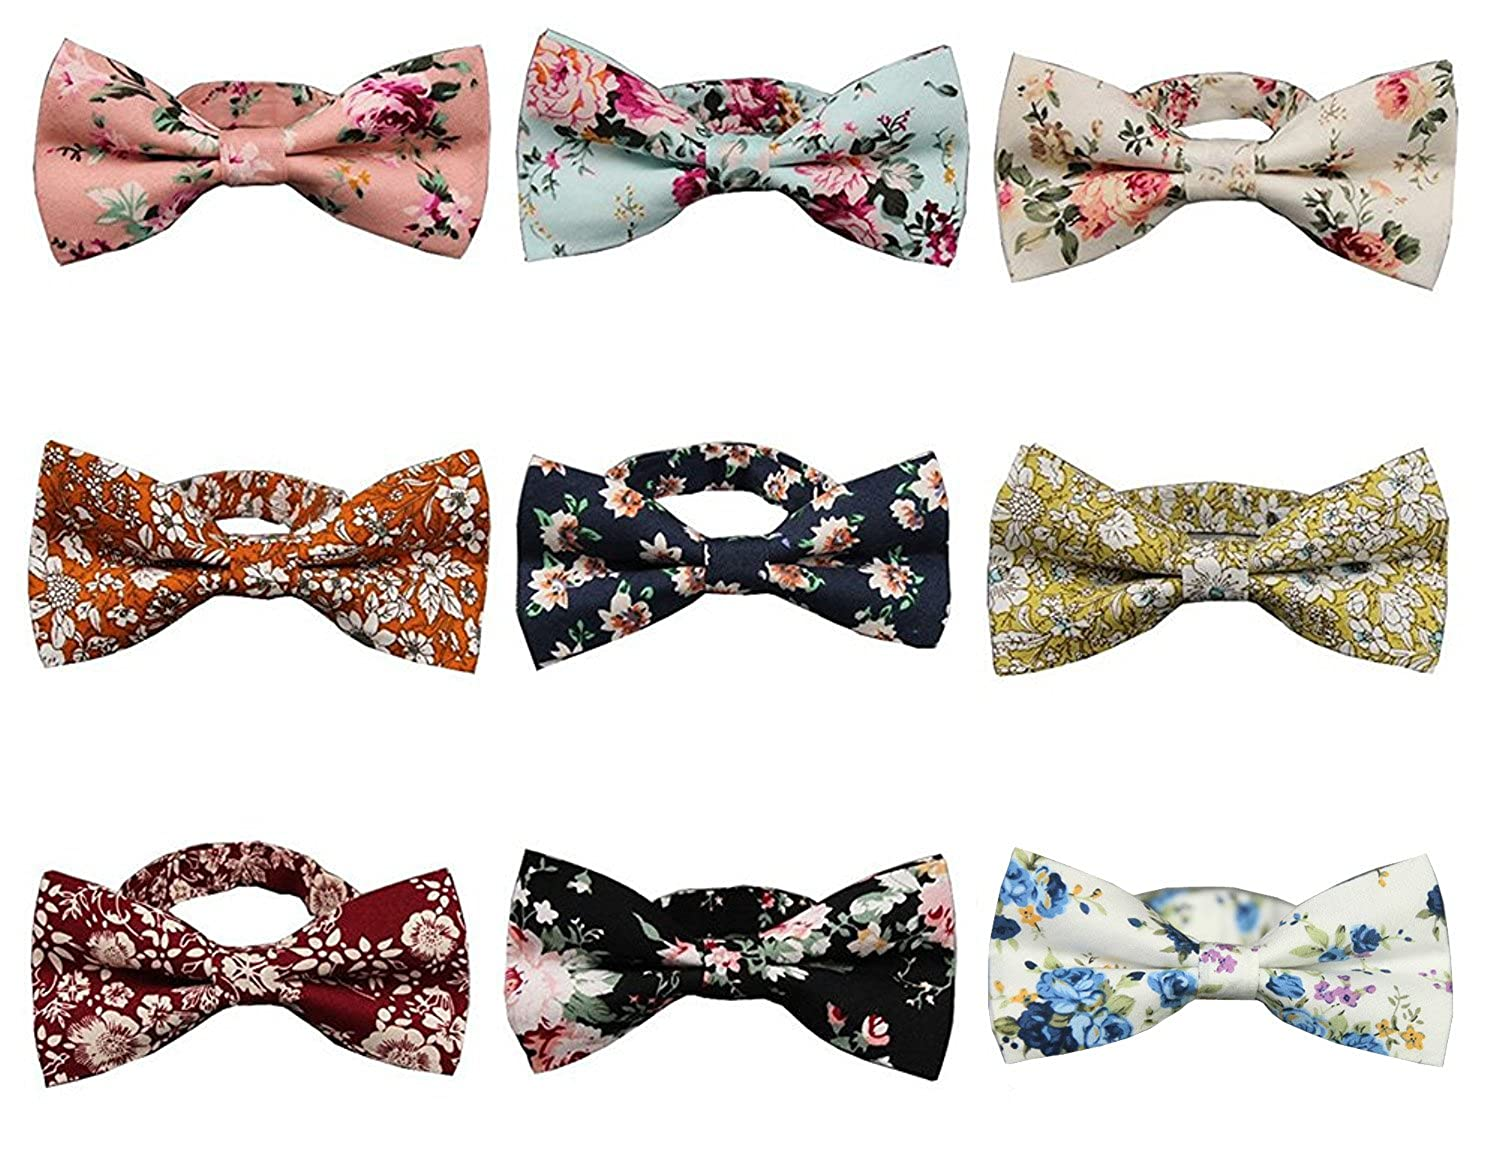 c4b2a6f276b6 Fashionable and handmade mens bow tie, is made of cotton(main material)  Approximately 12cm wide x 5.7cm high. Gellwhu own its TradeMark.